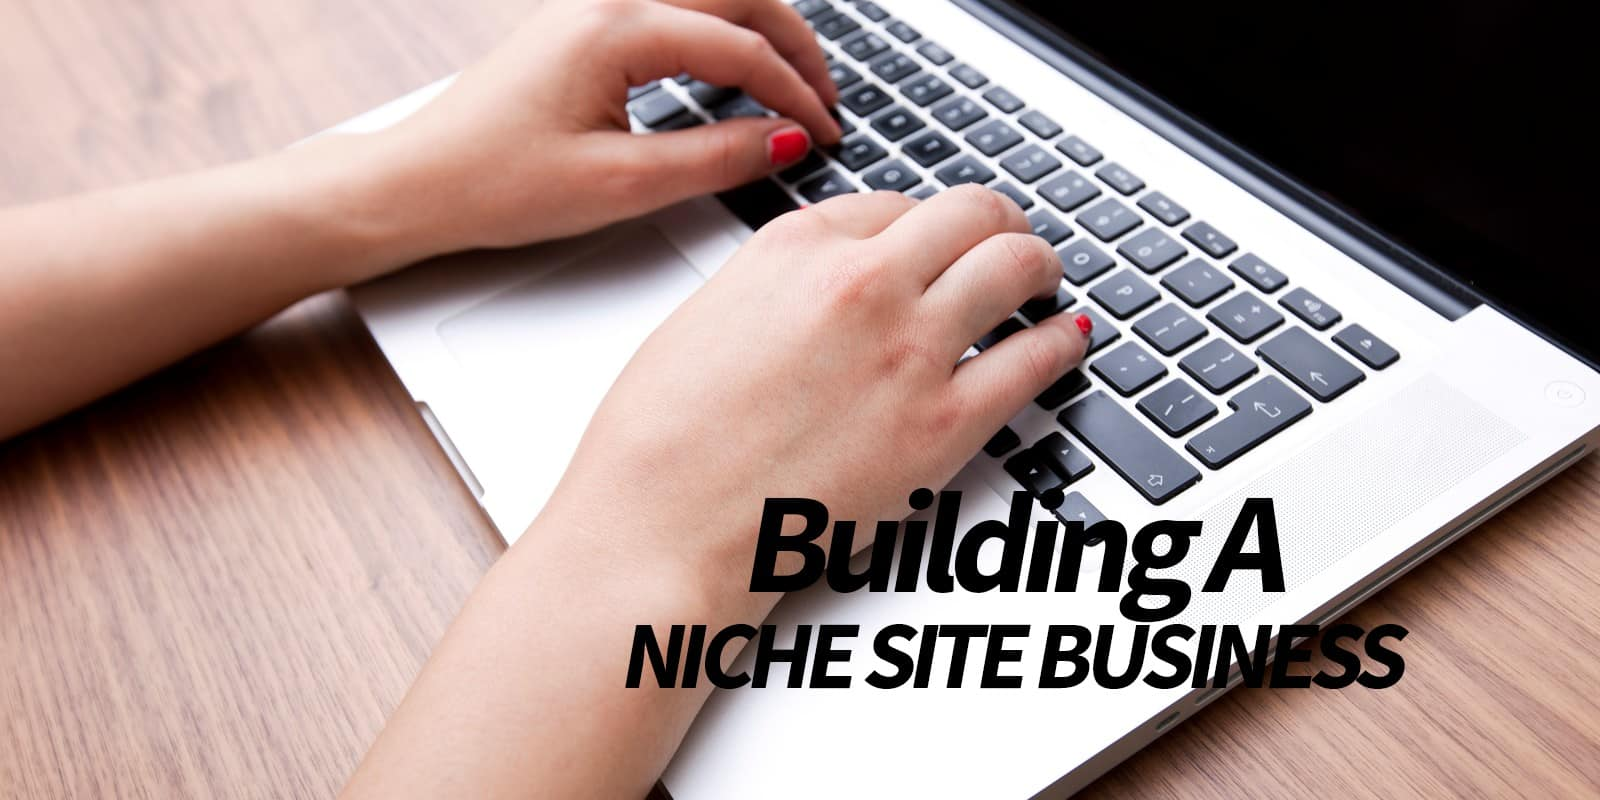 Building a niche dating site